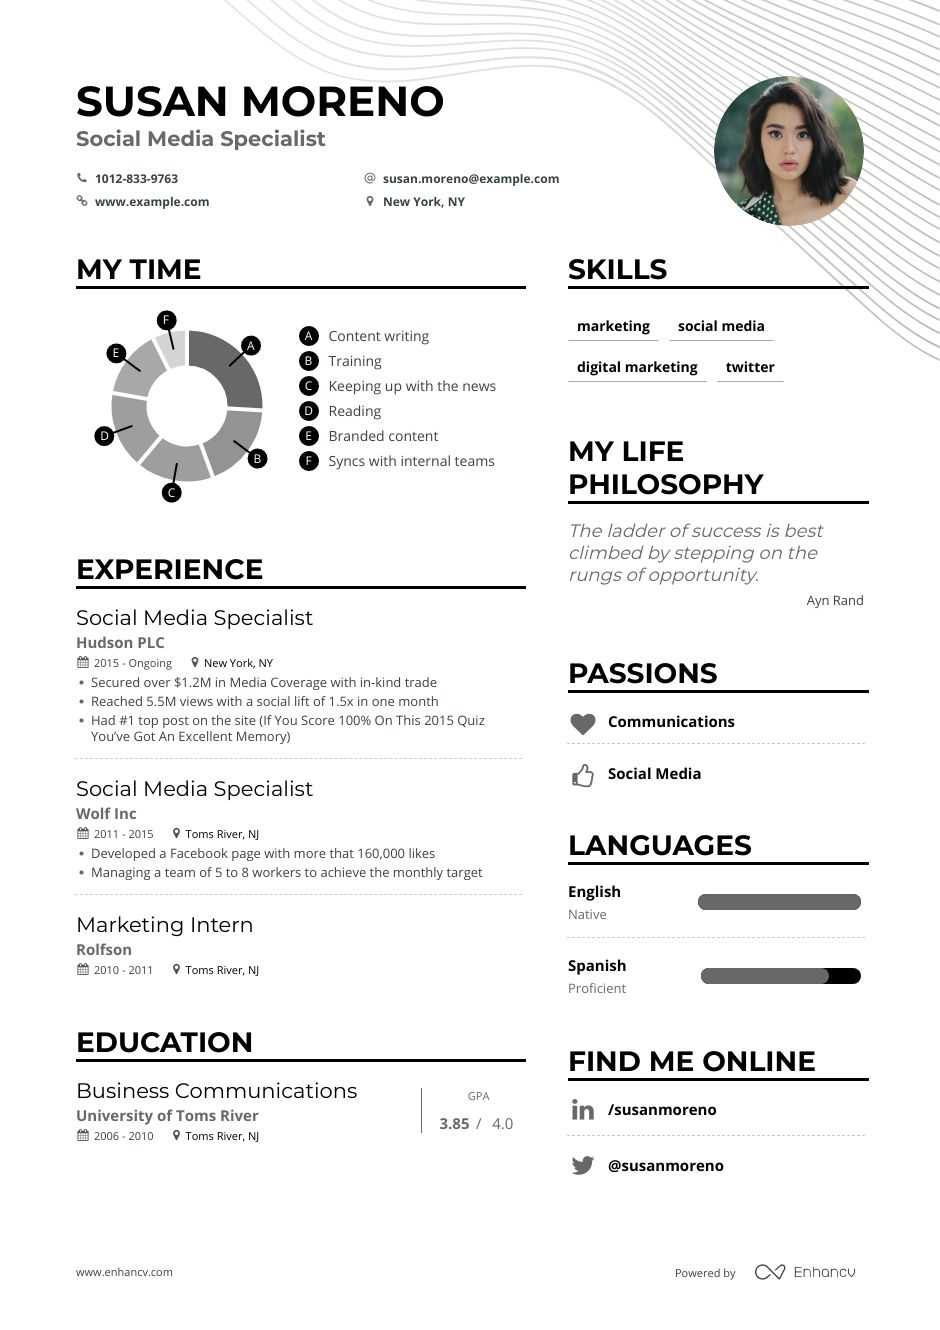 sample resume templates for social media specialist